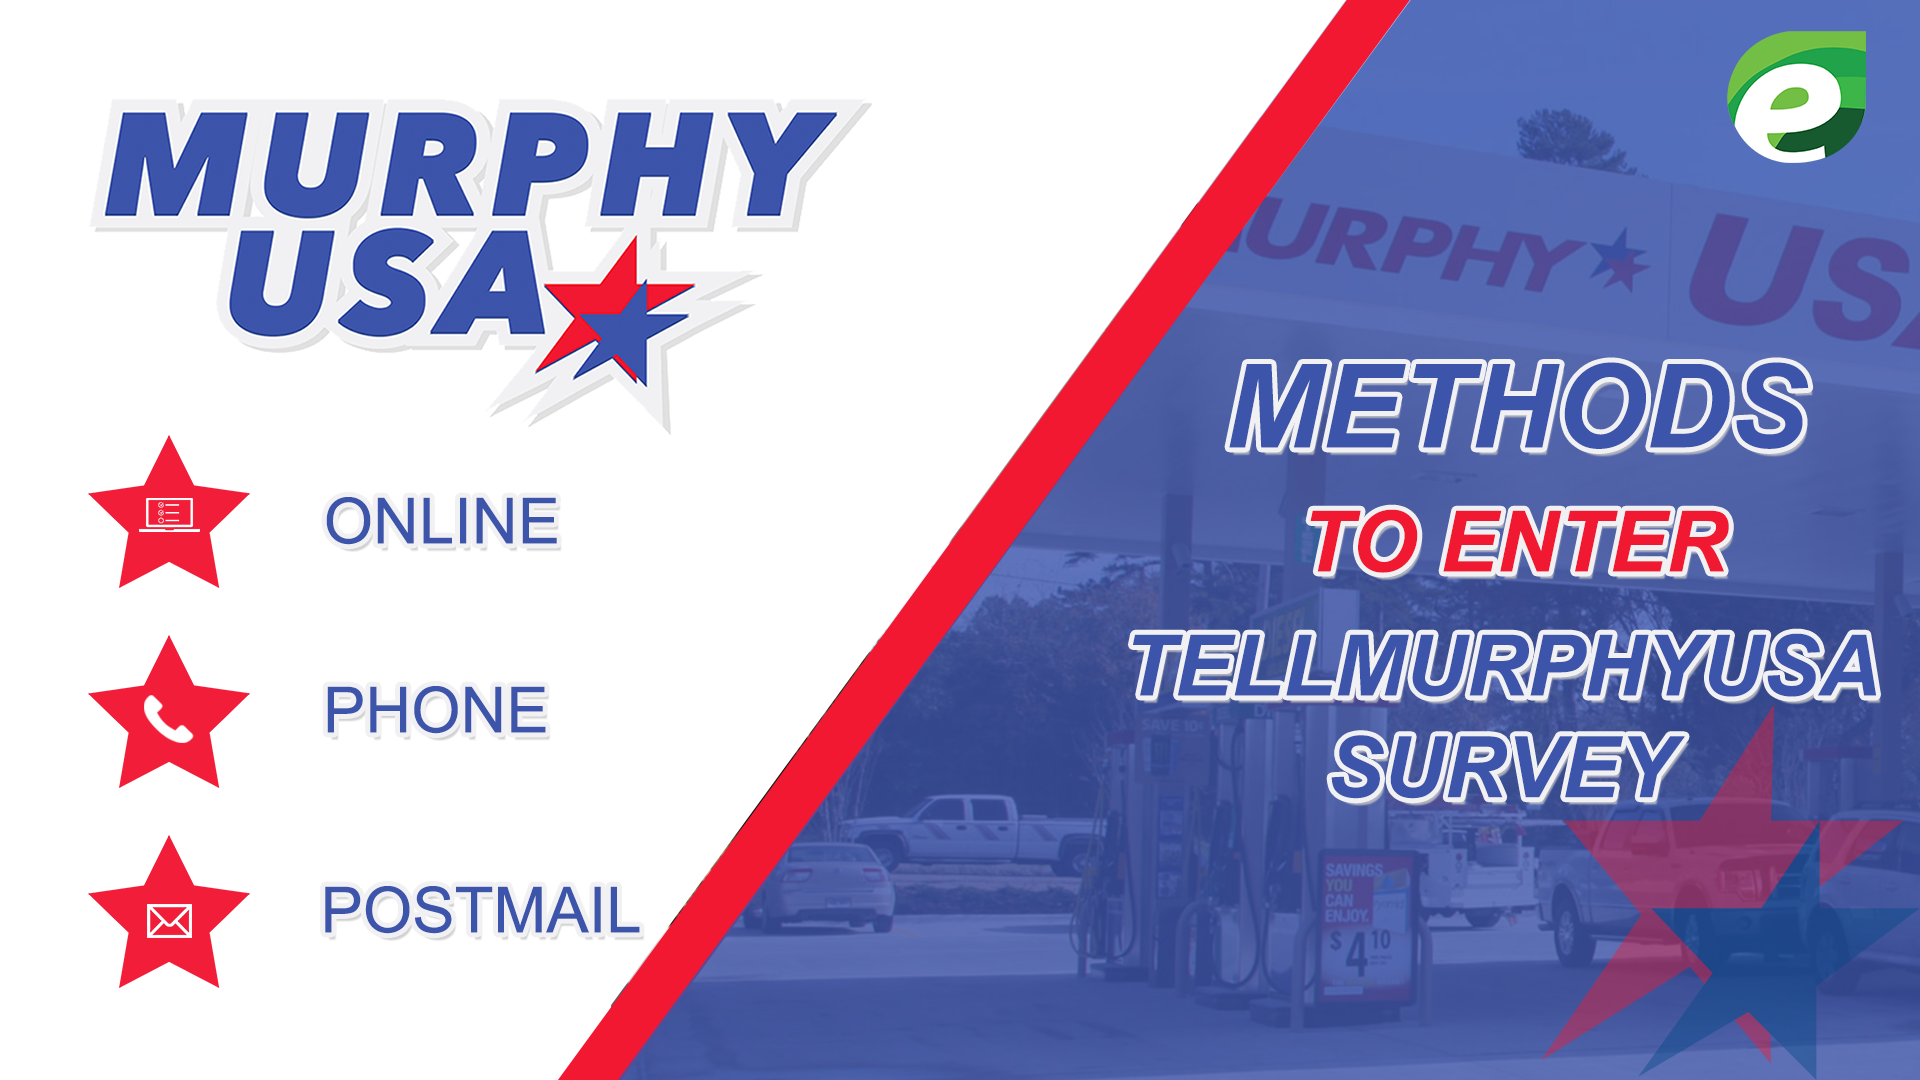 tell murphy - methods to enter the survey